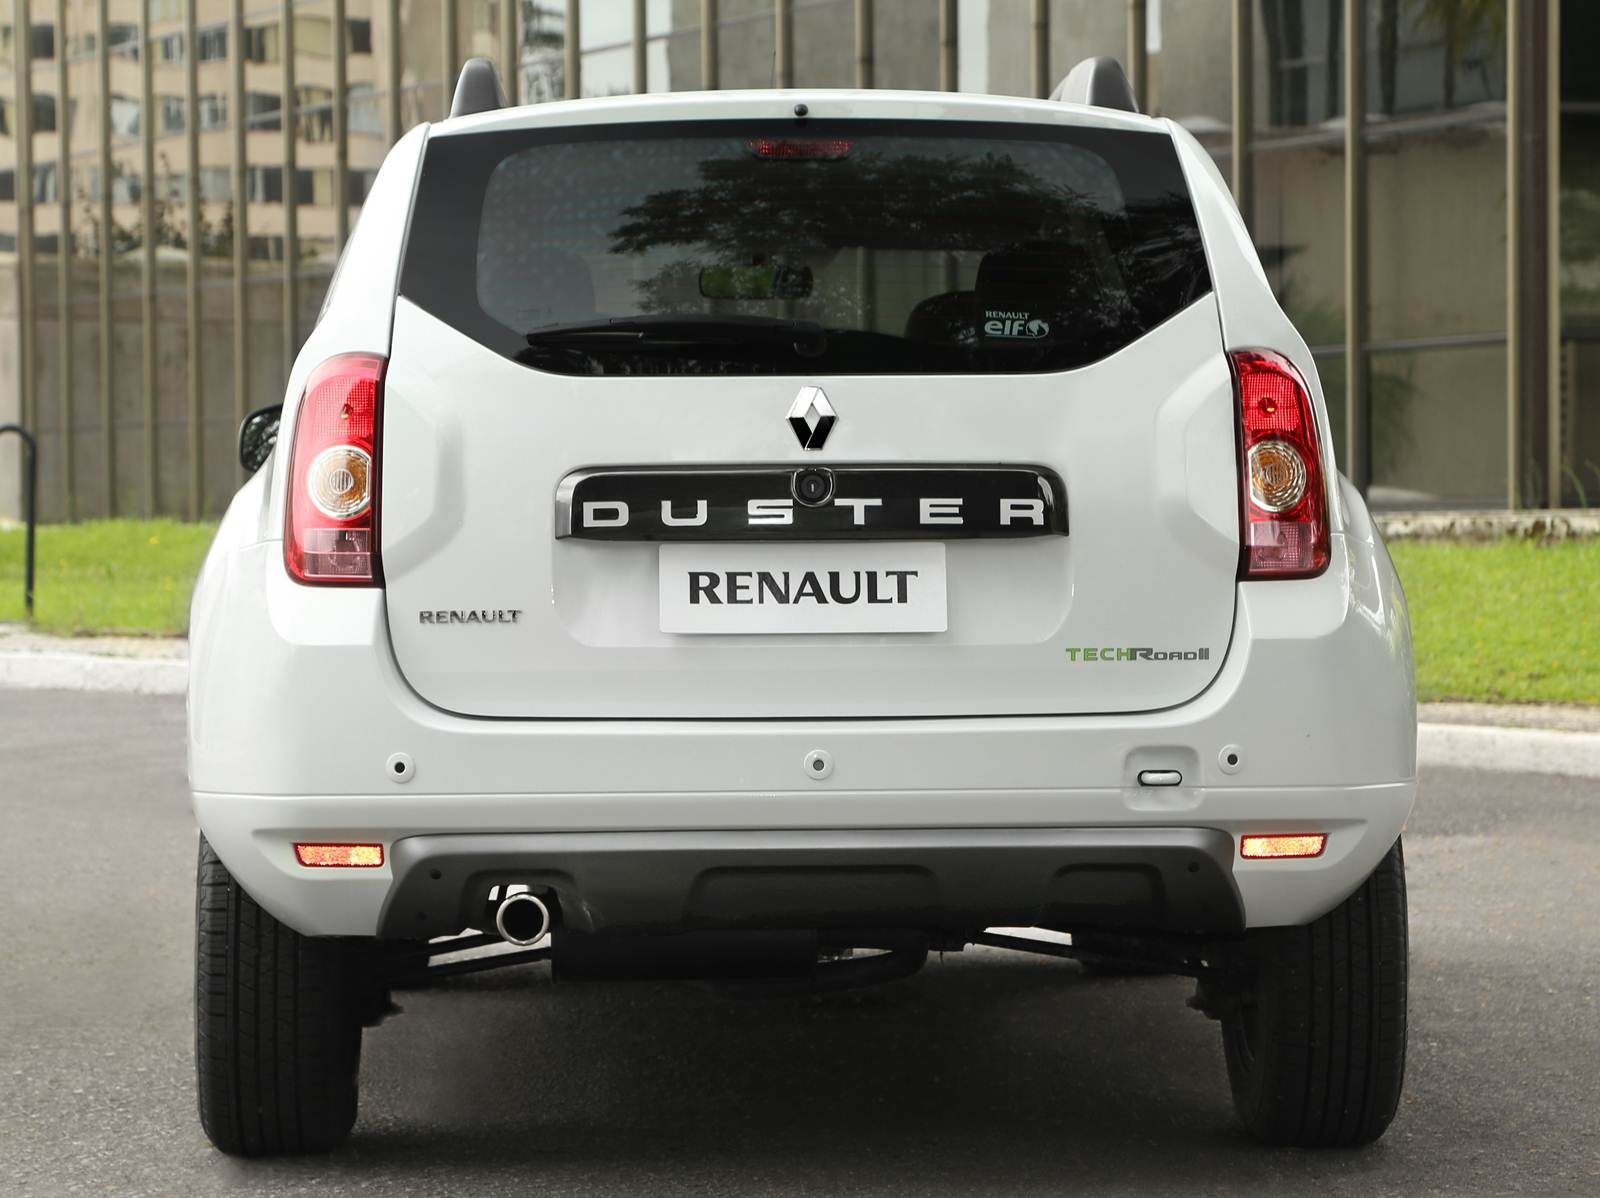 Renault Duster 2.0 2014 photo - 9